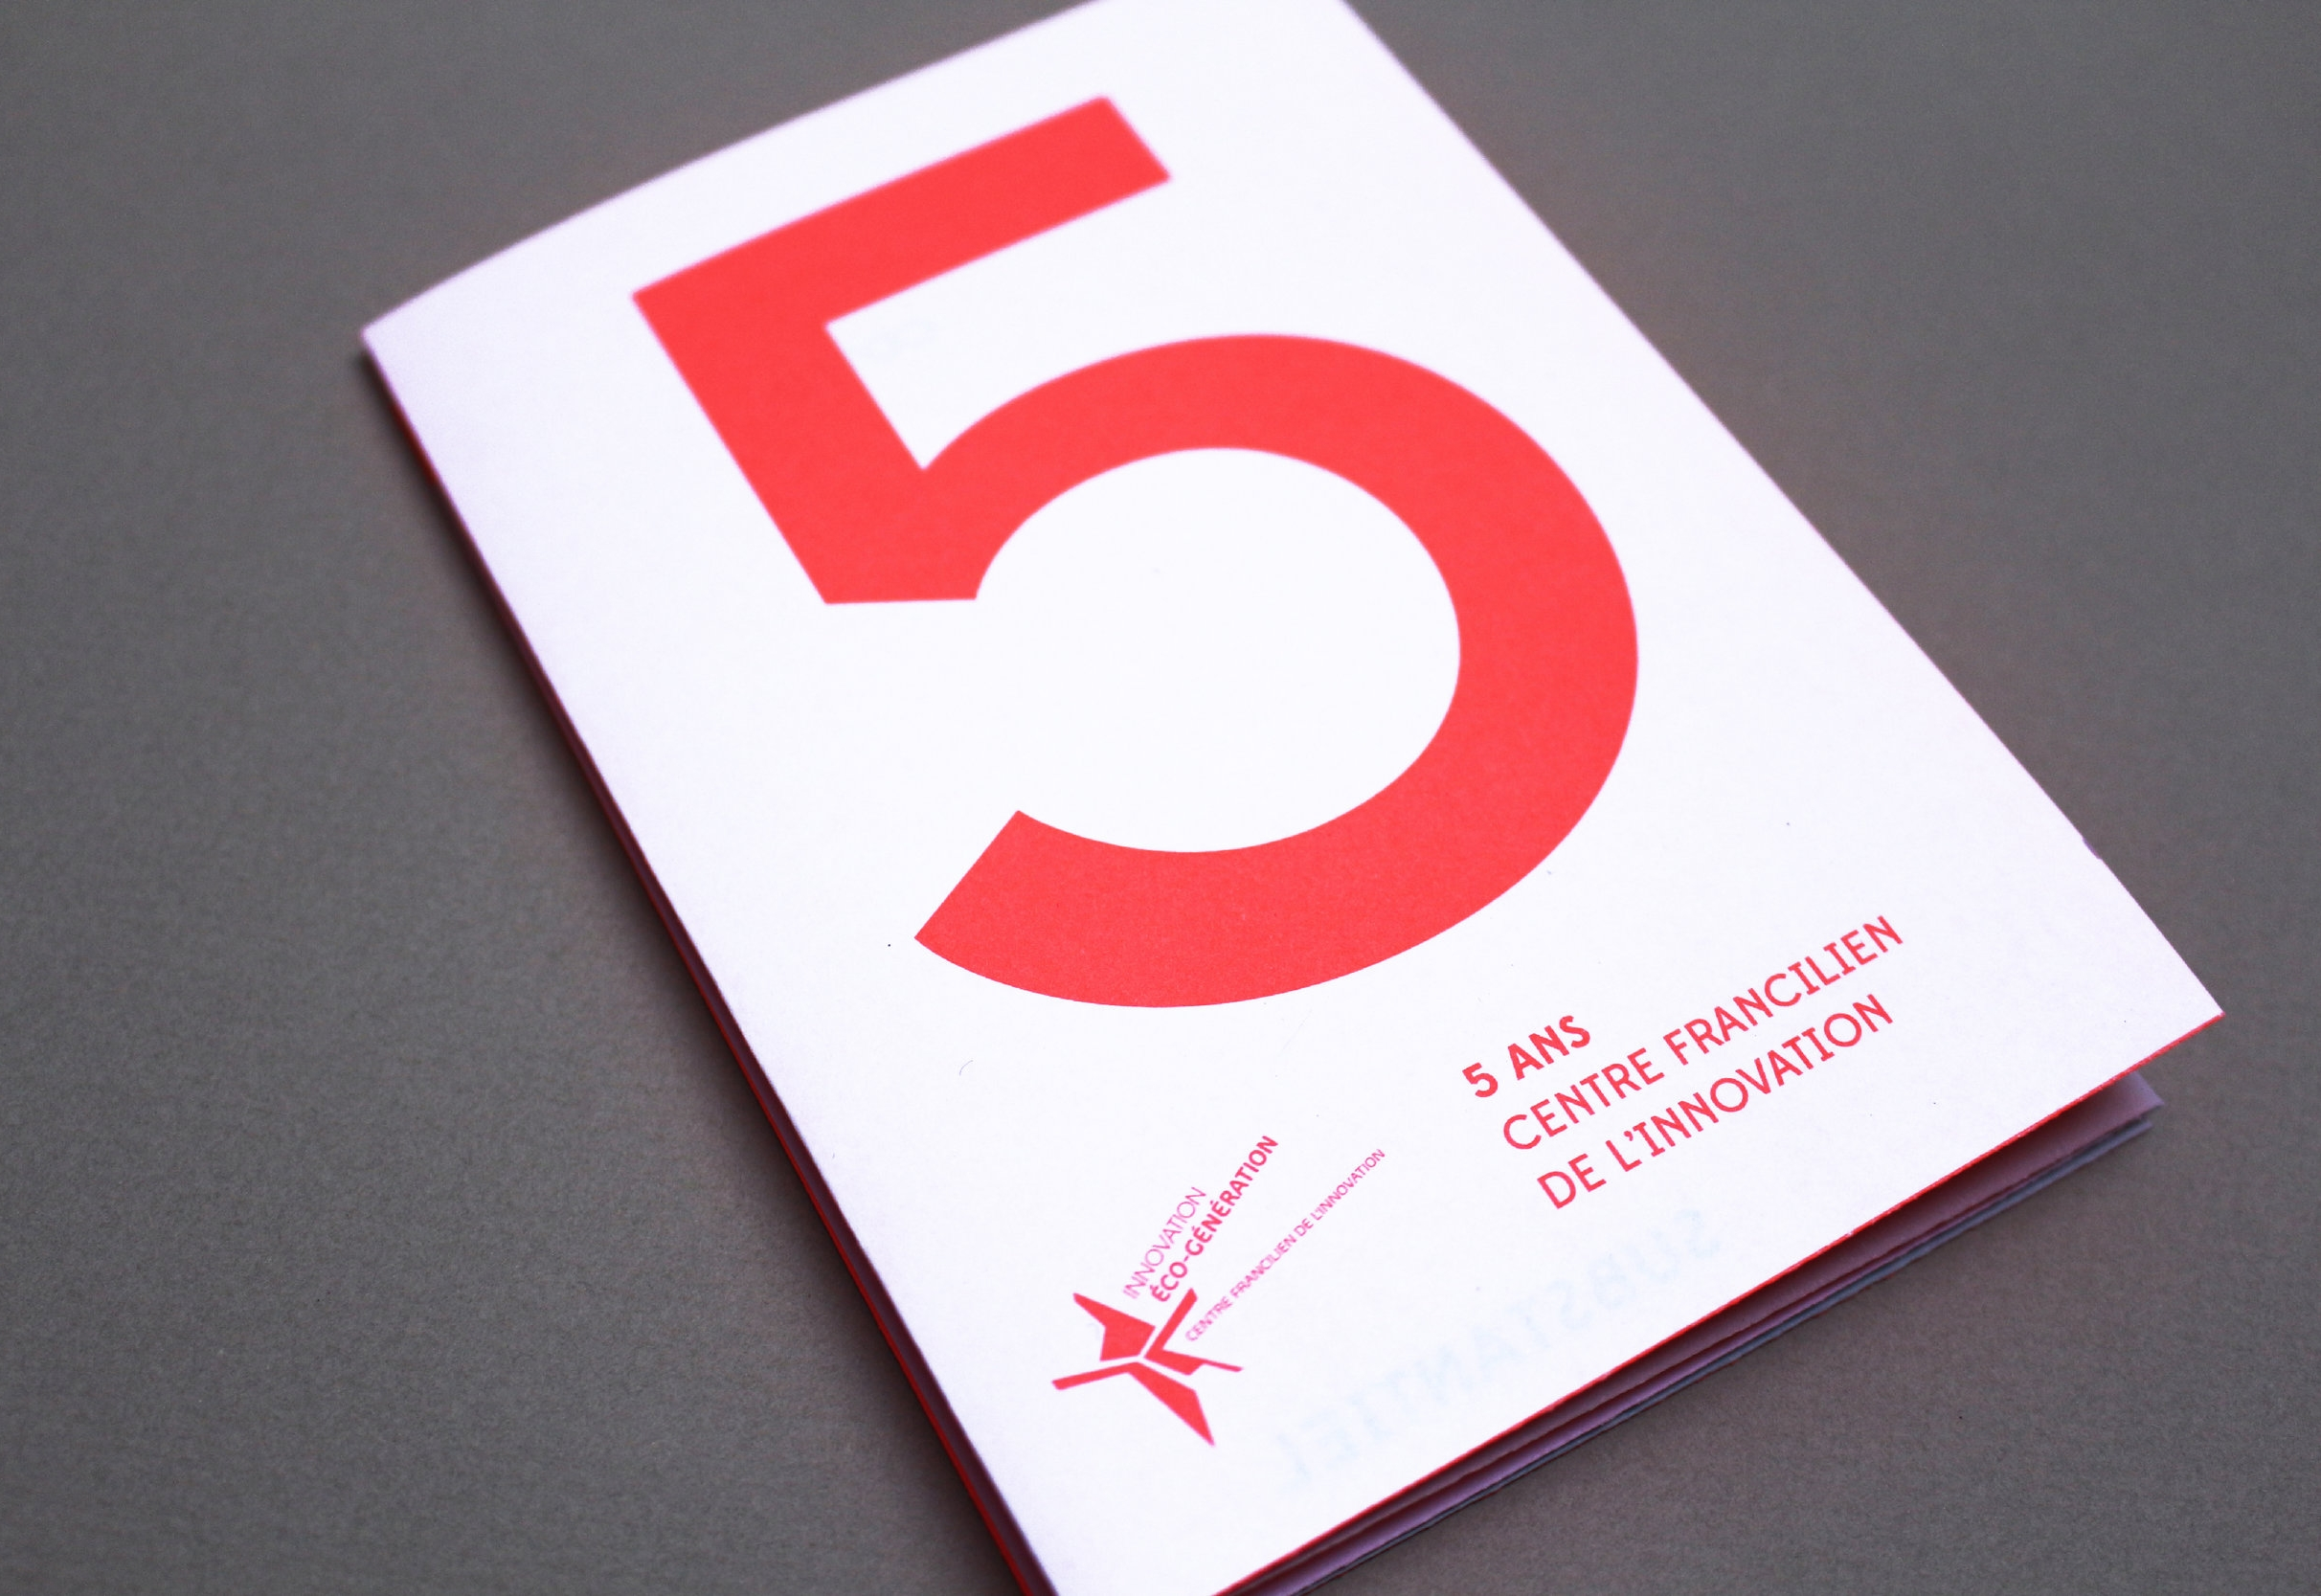 5 ANS D'INNOVATION FRANCILIENNE